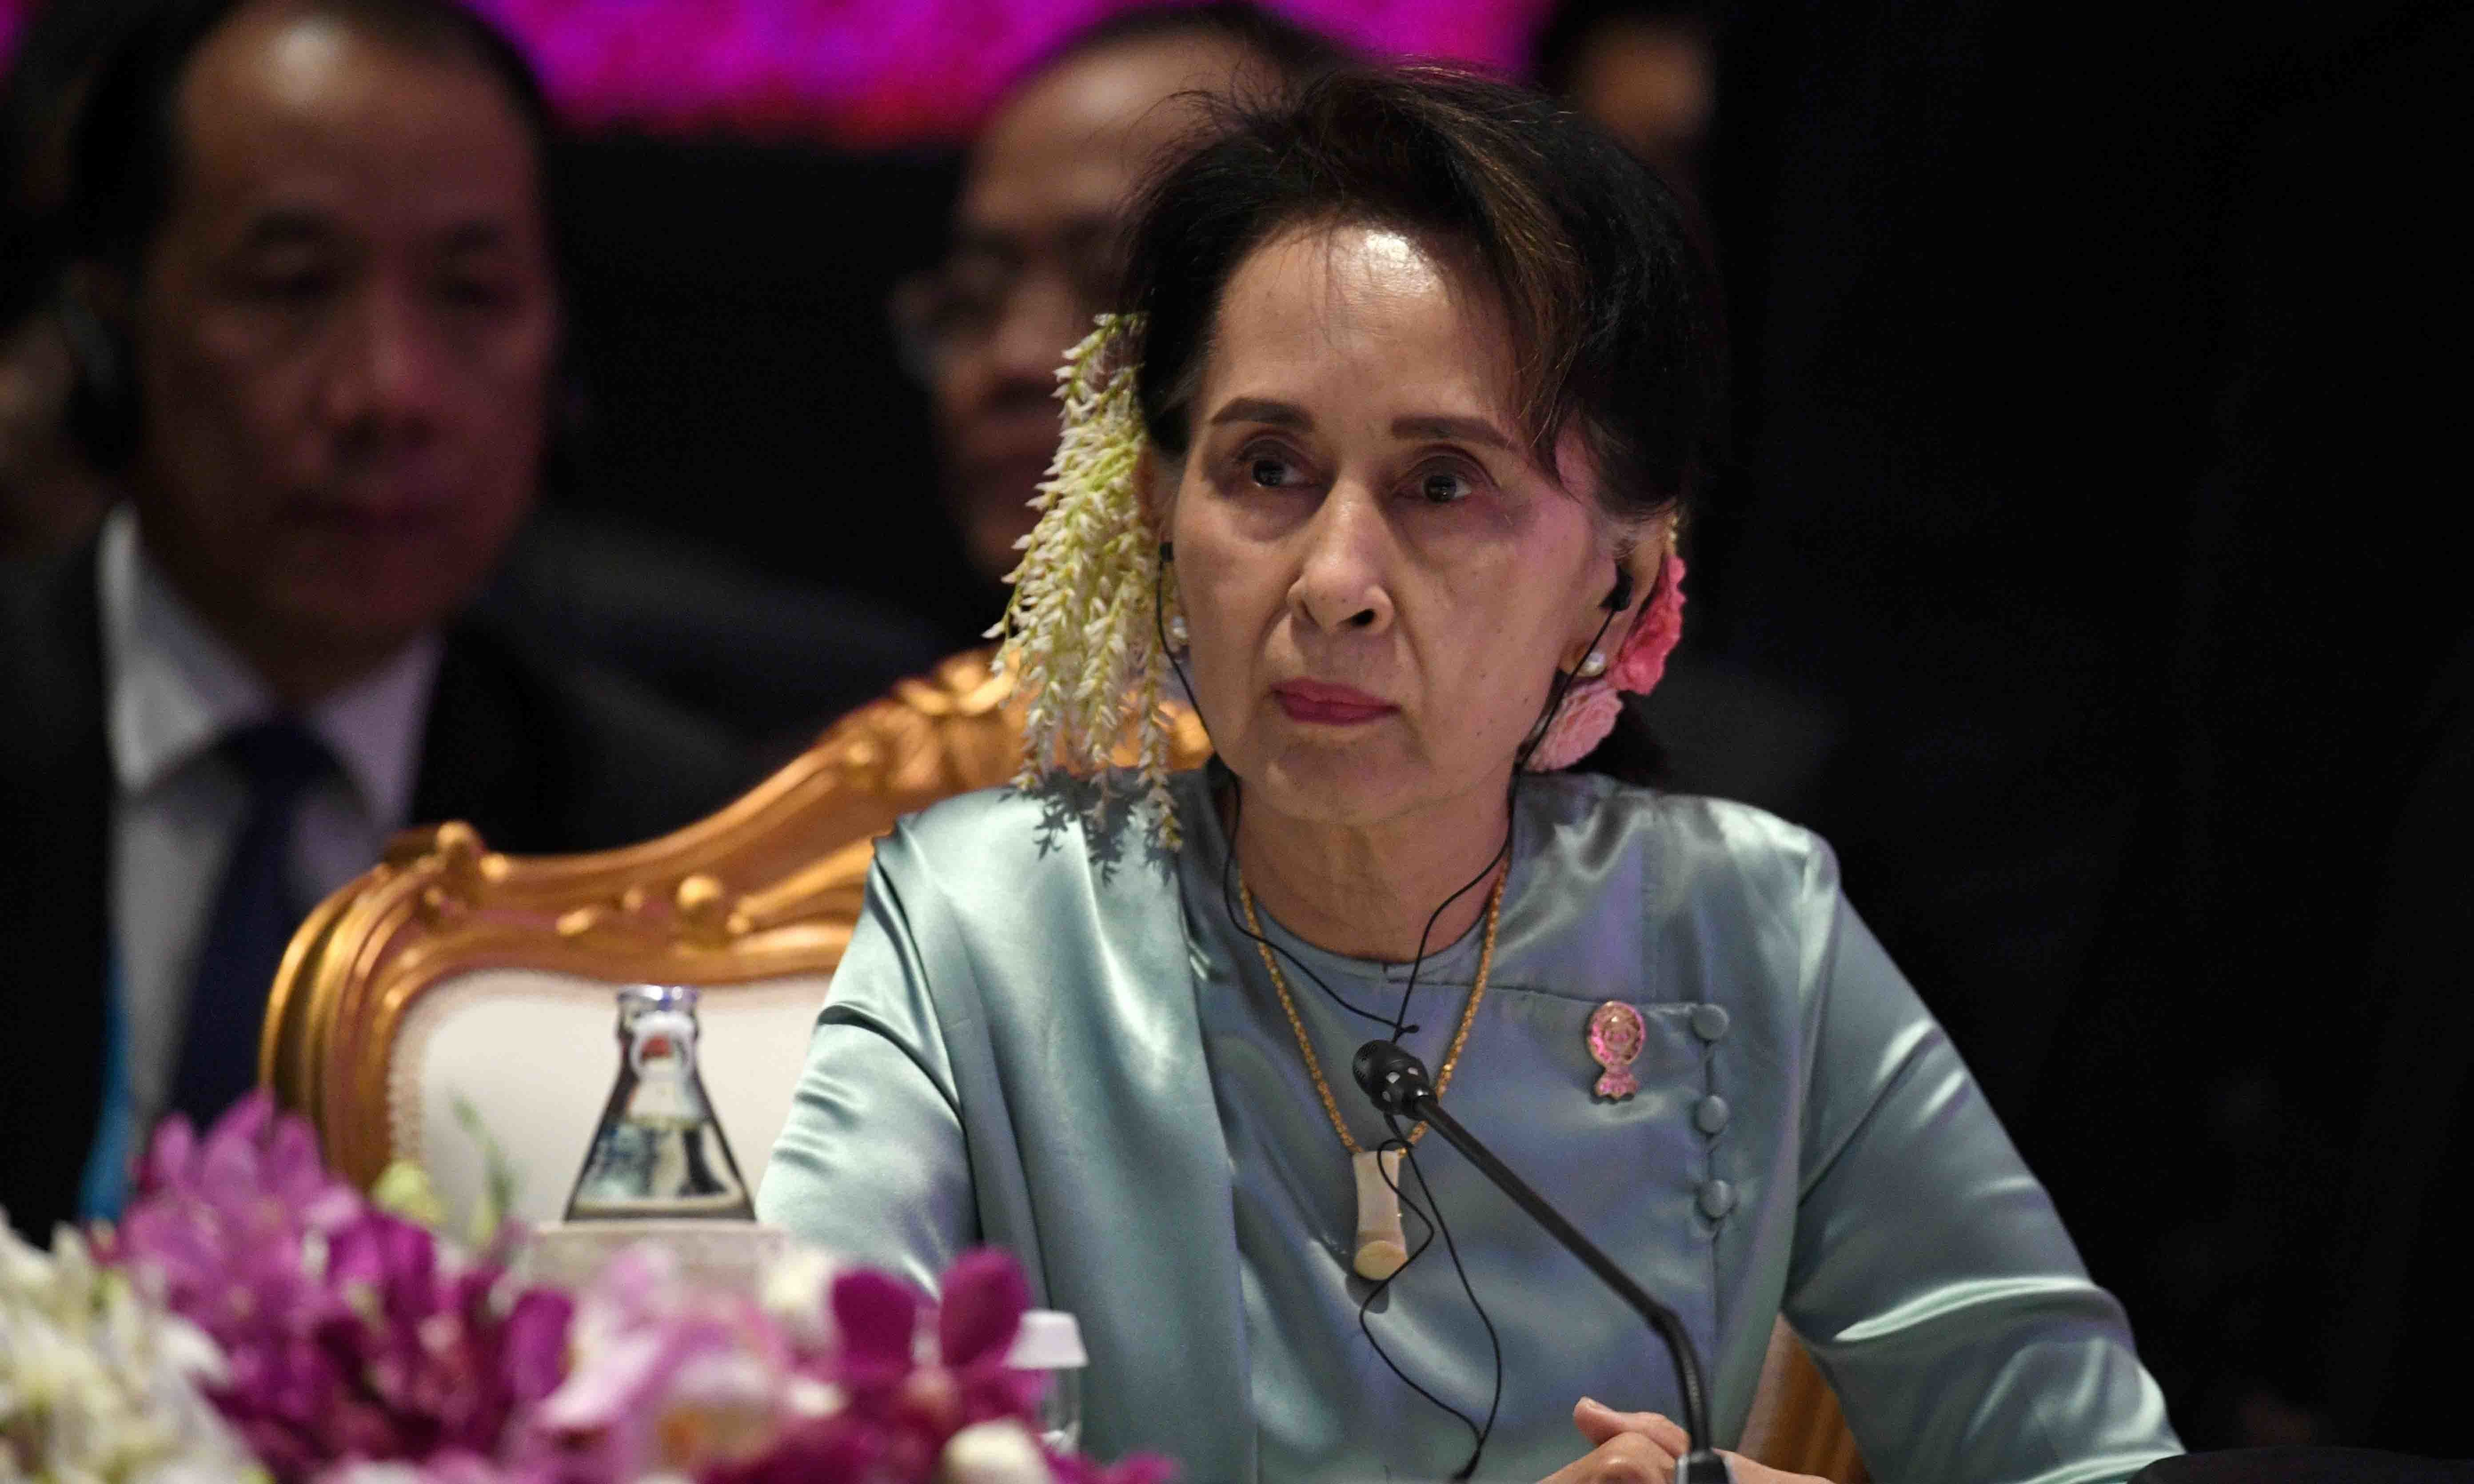 State Counsellor of Myanmar Aung San Suu Kyi attends the 22nd ASEAN Plus Three Summit in Bangkok in 2019. — Reuters